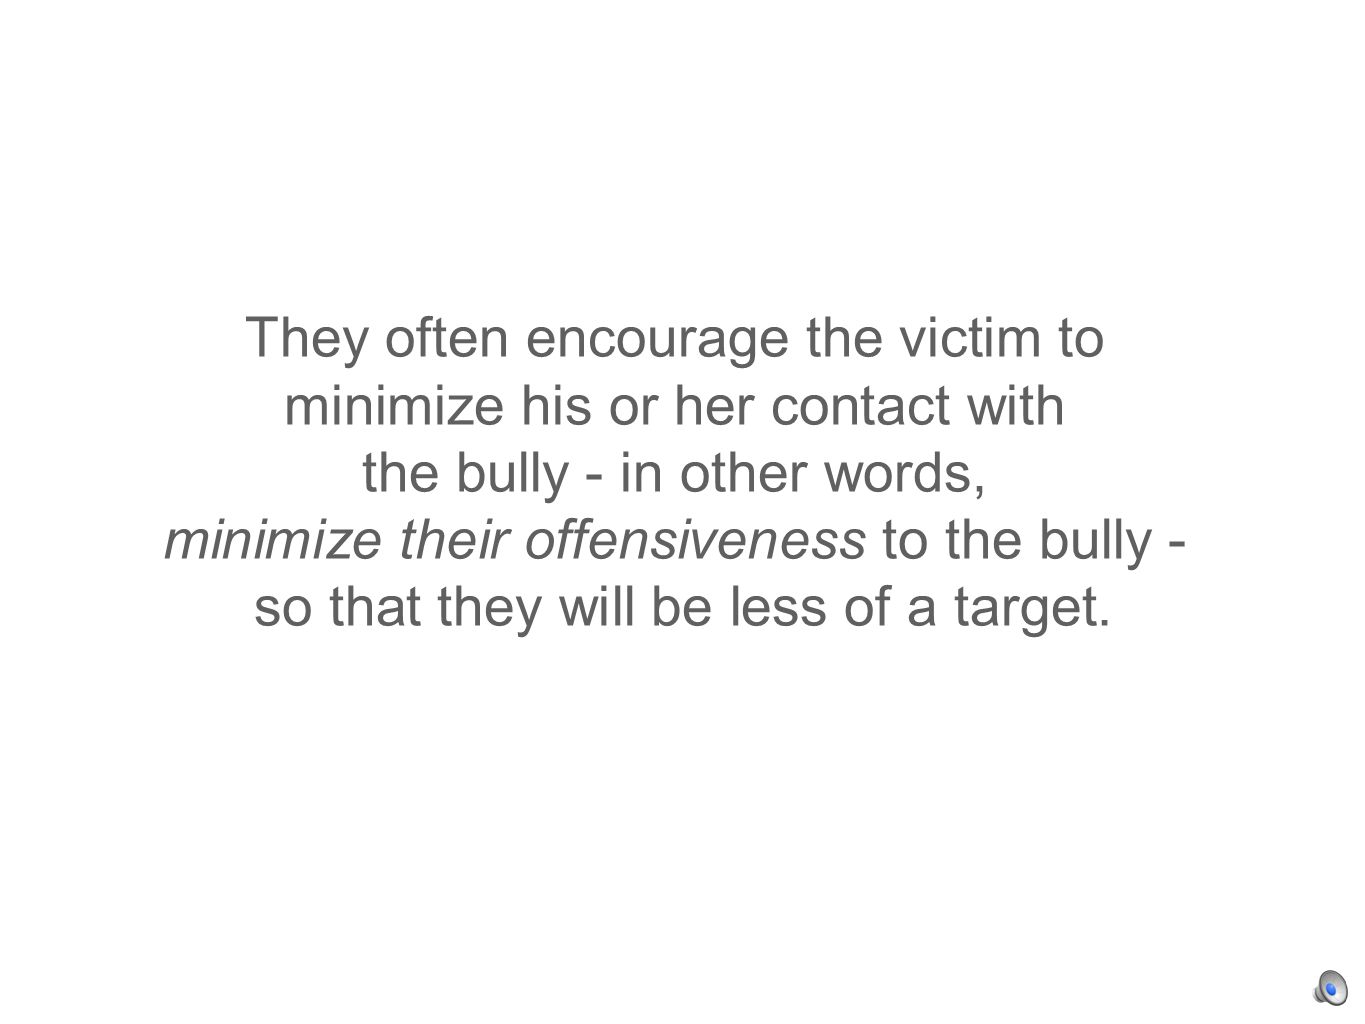 They often encourage the victim to minimize his or her contact with the bully - in other words, minimize their offensiveness to the bully - so that they will be less of a target.